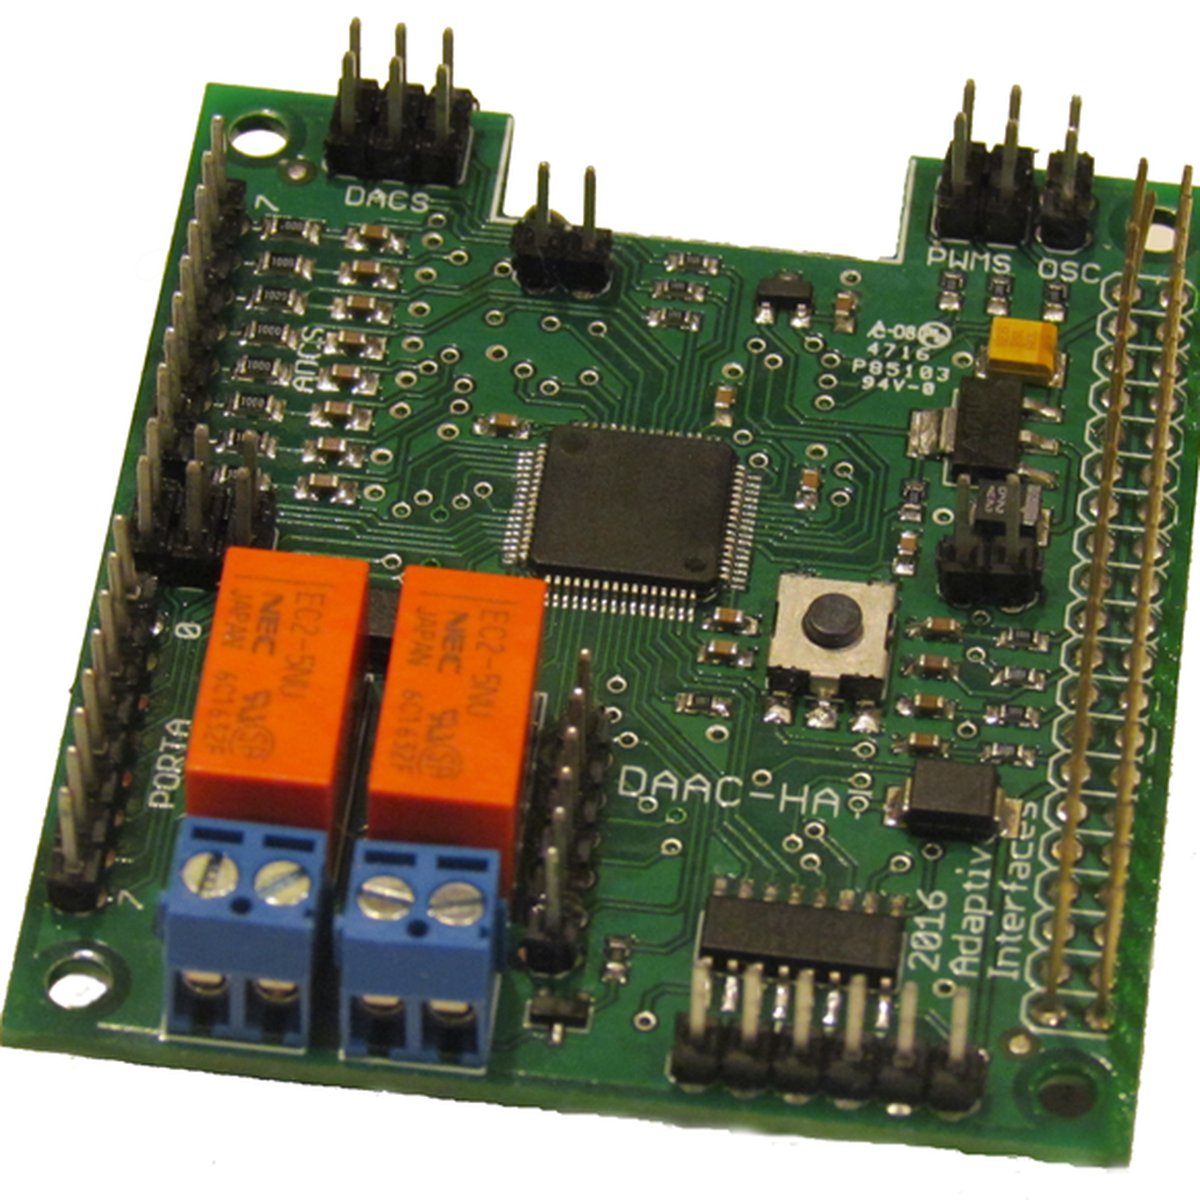 DAAC-Hat for Raspberry Pi from Adaptive Interfaces on Tindie